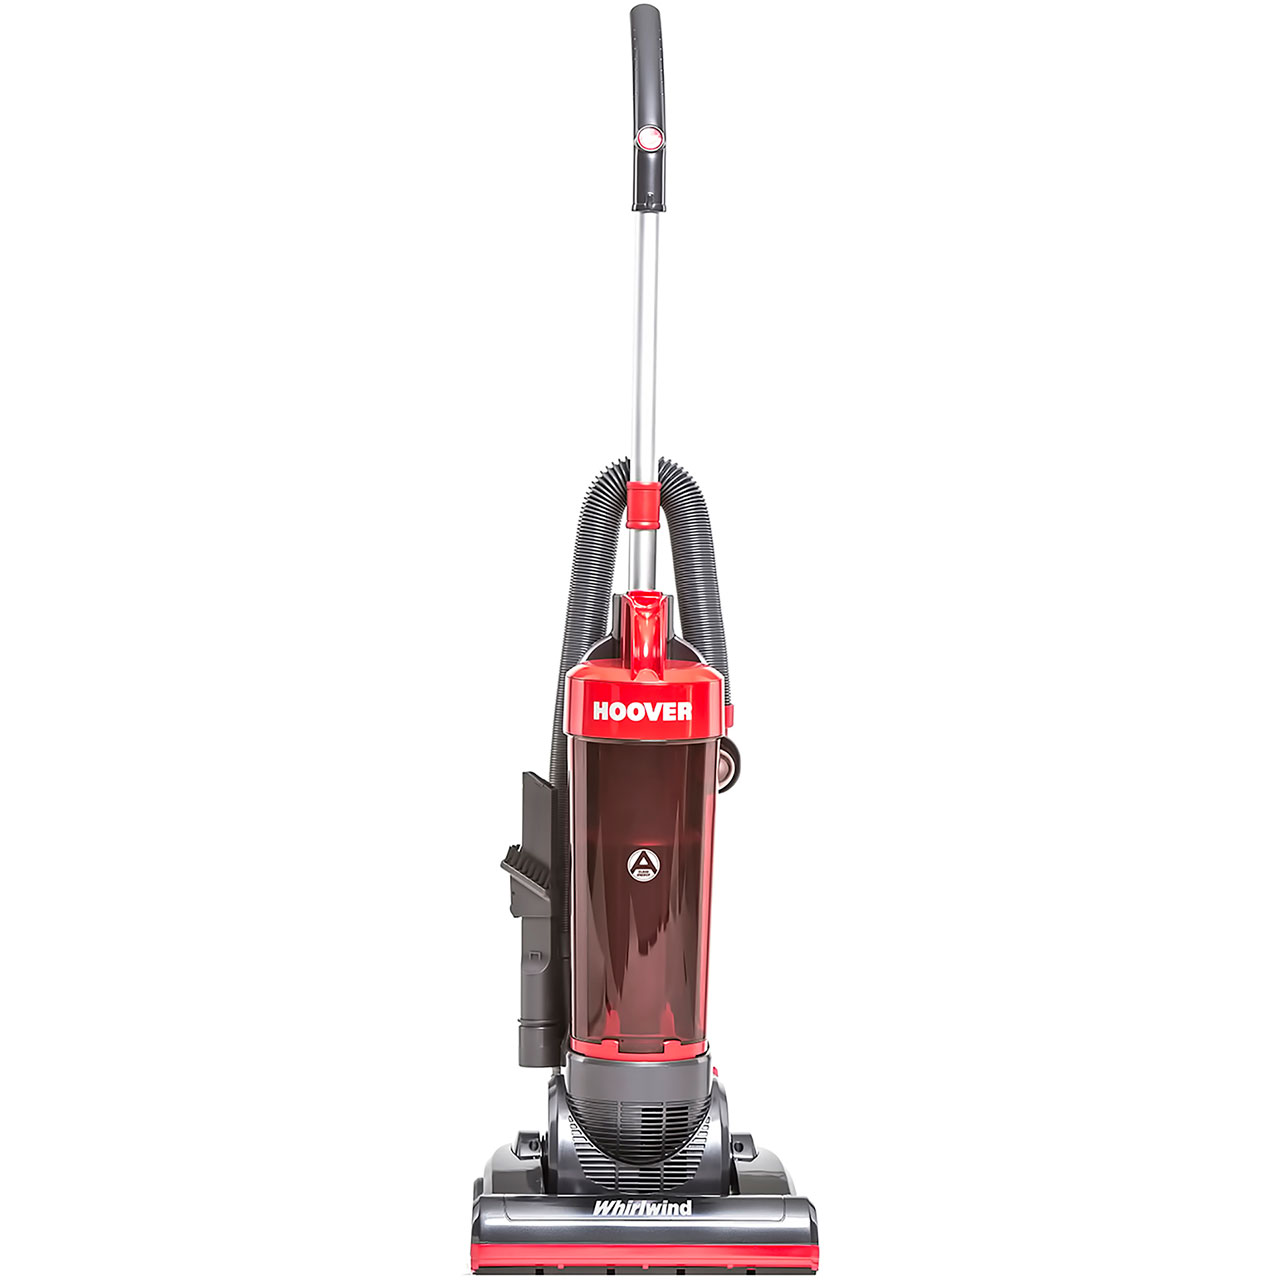 best bagless vacuum cleaner hoover whirlwind wr71wr01 bagless upright vacuum cleaner 13292